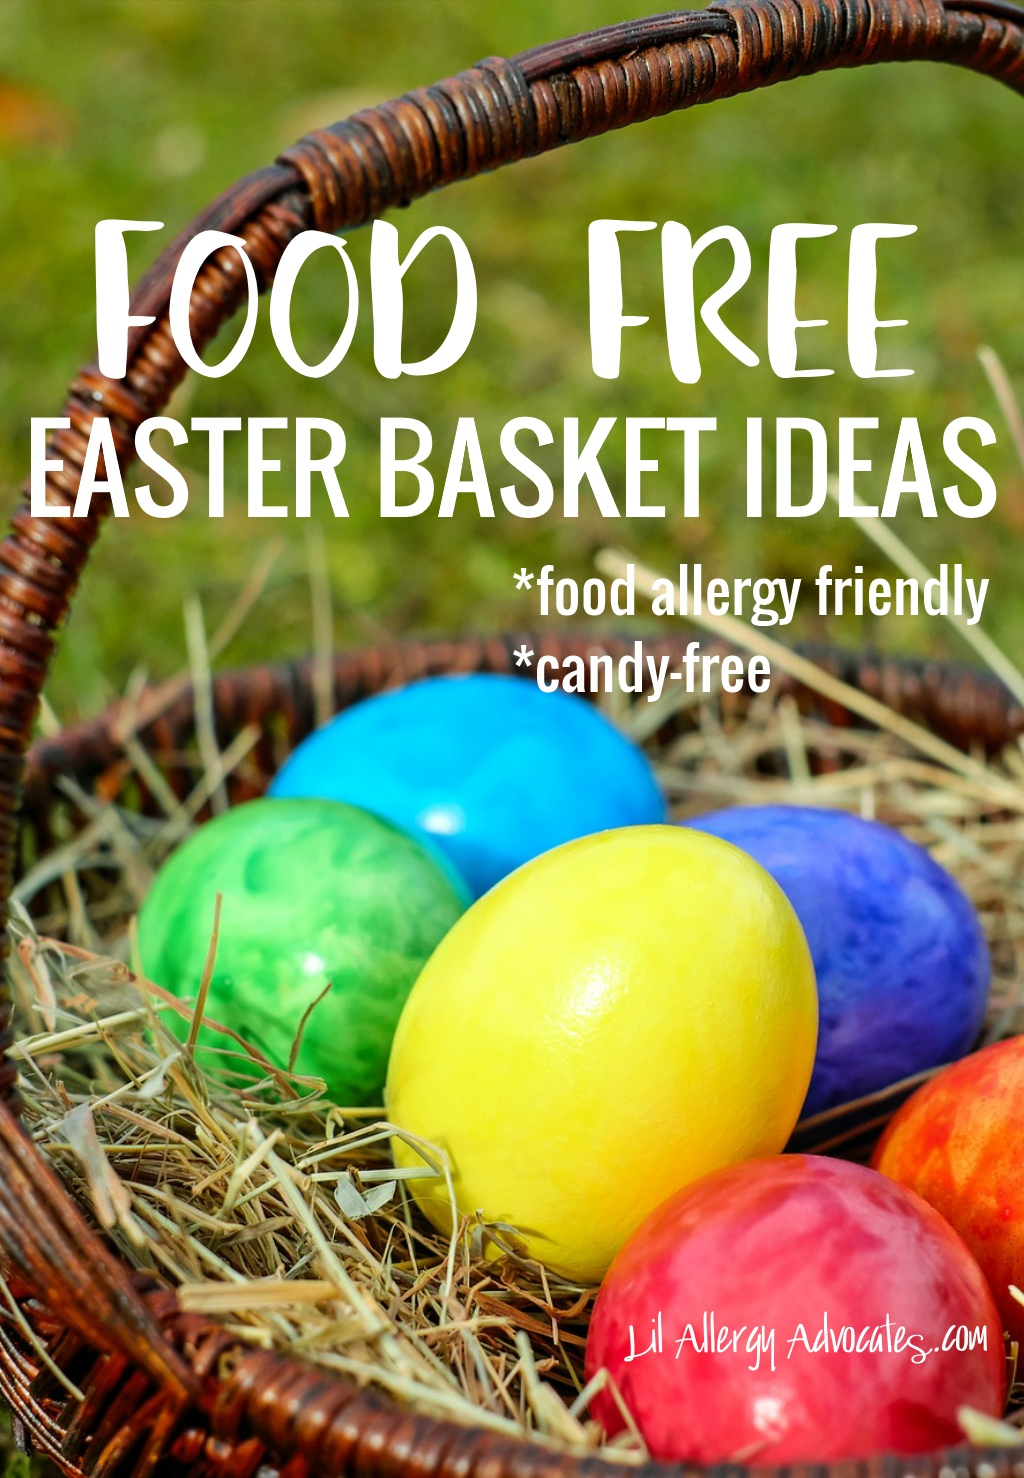 Food free easter basket ideas lil allergy advocates food free easter basket ideas negle Image collections